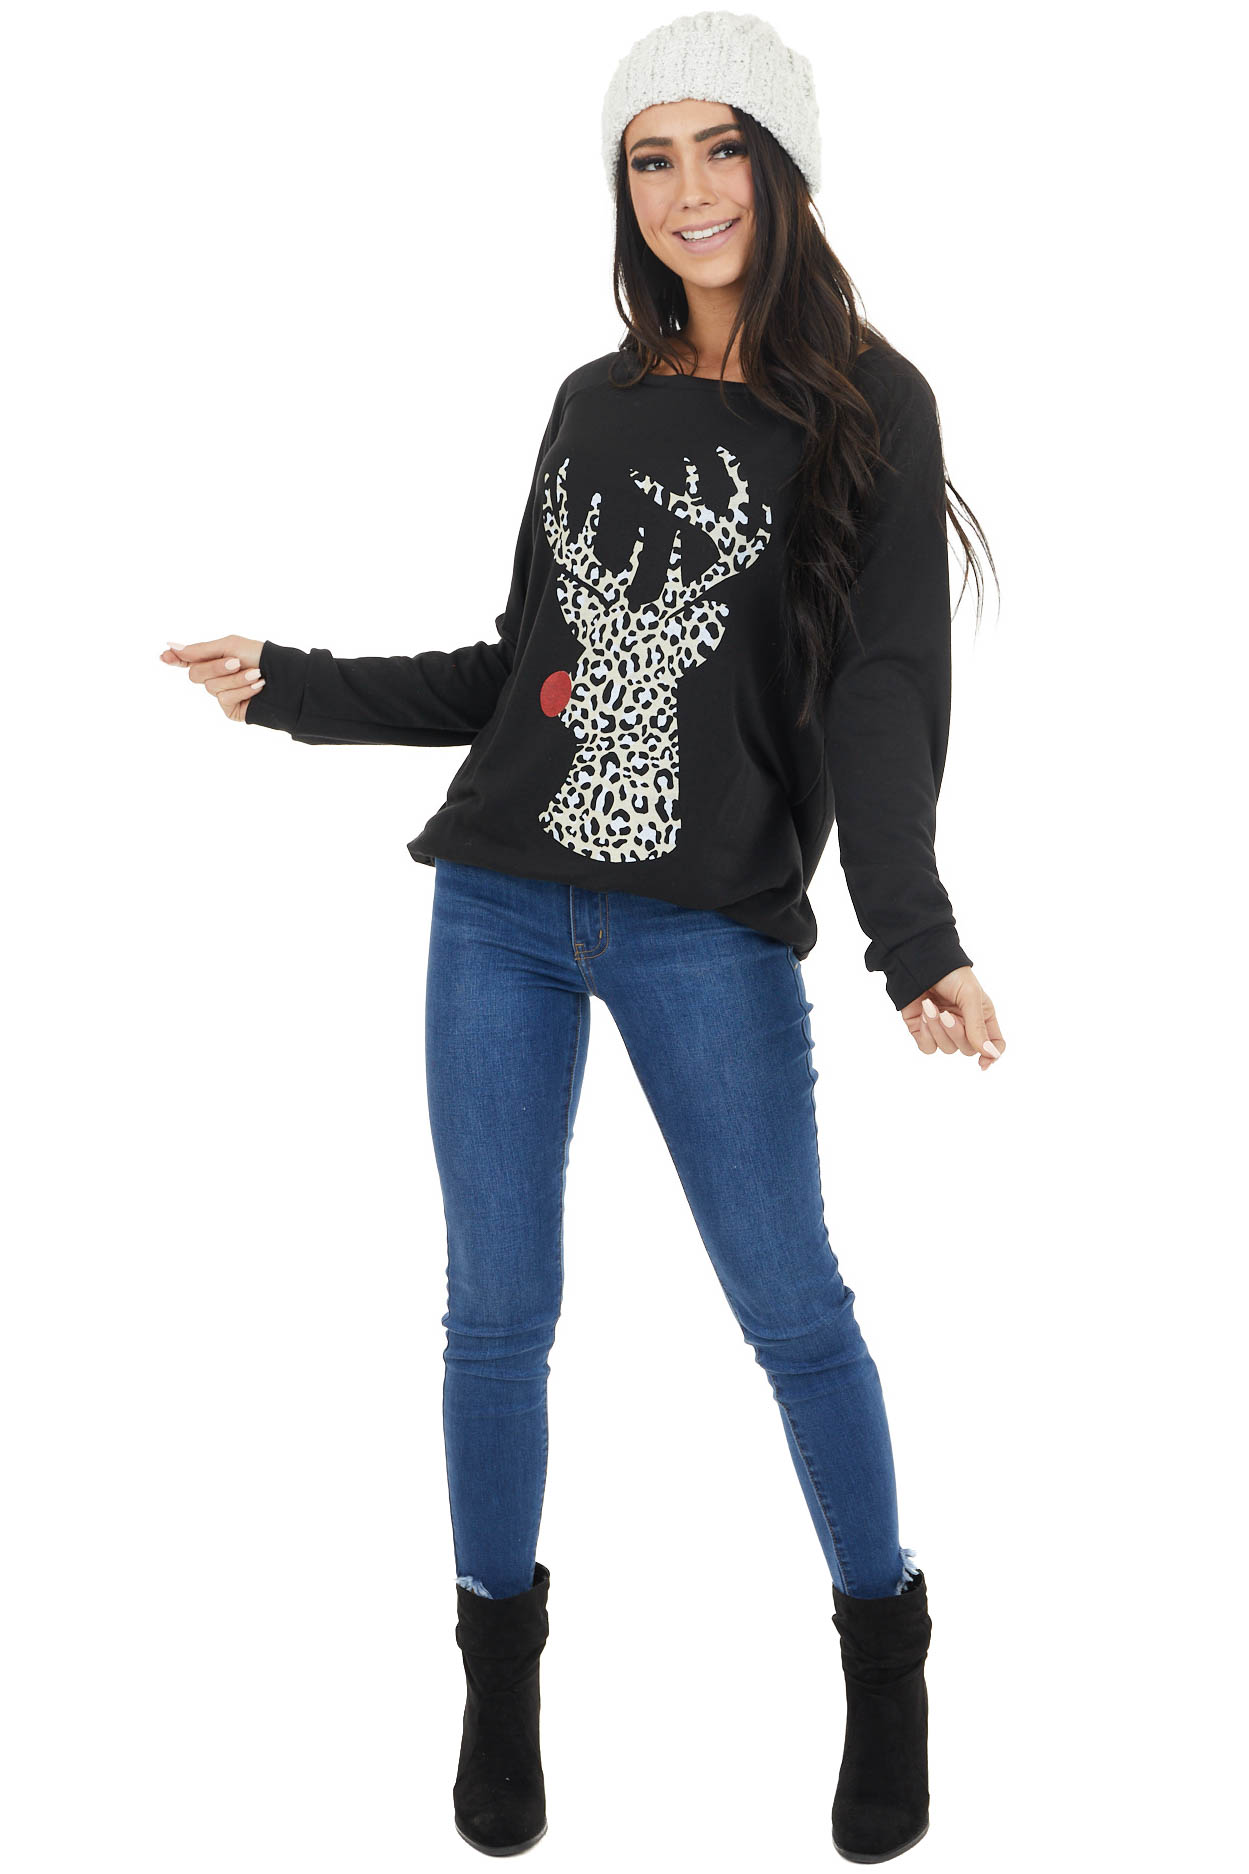 Black Long Sleeve Top with Leopard Print Rudolph Graphic